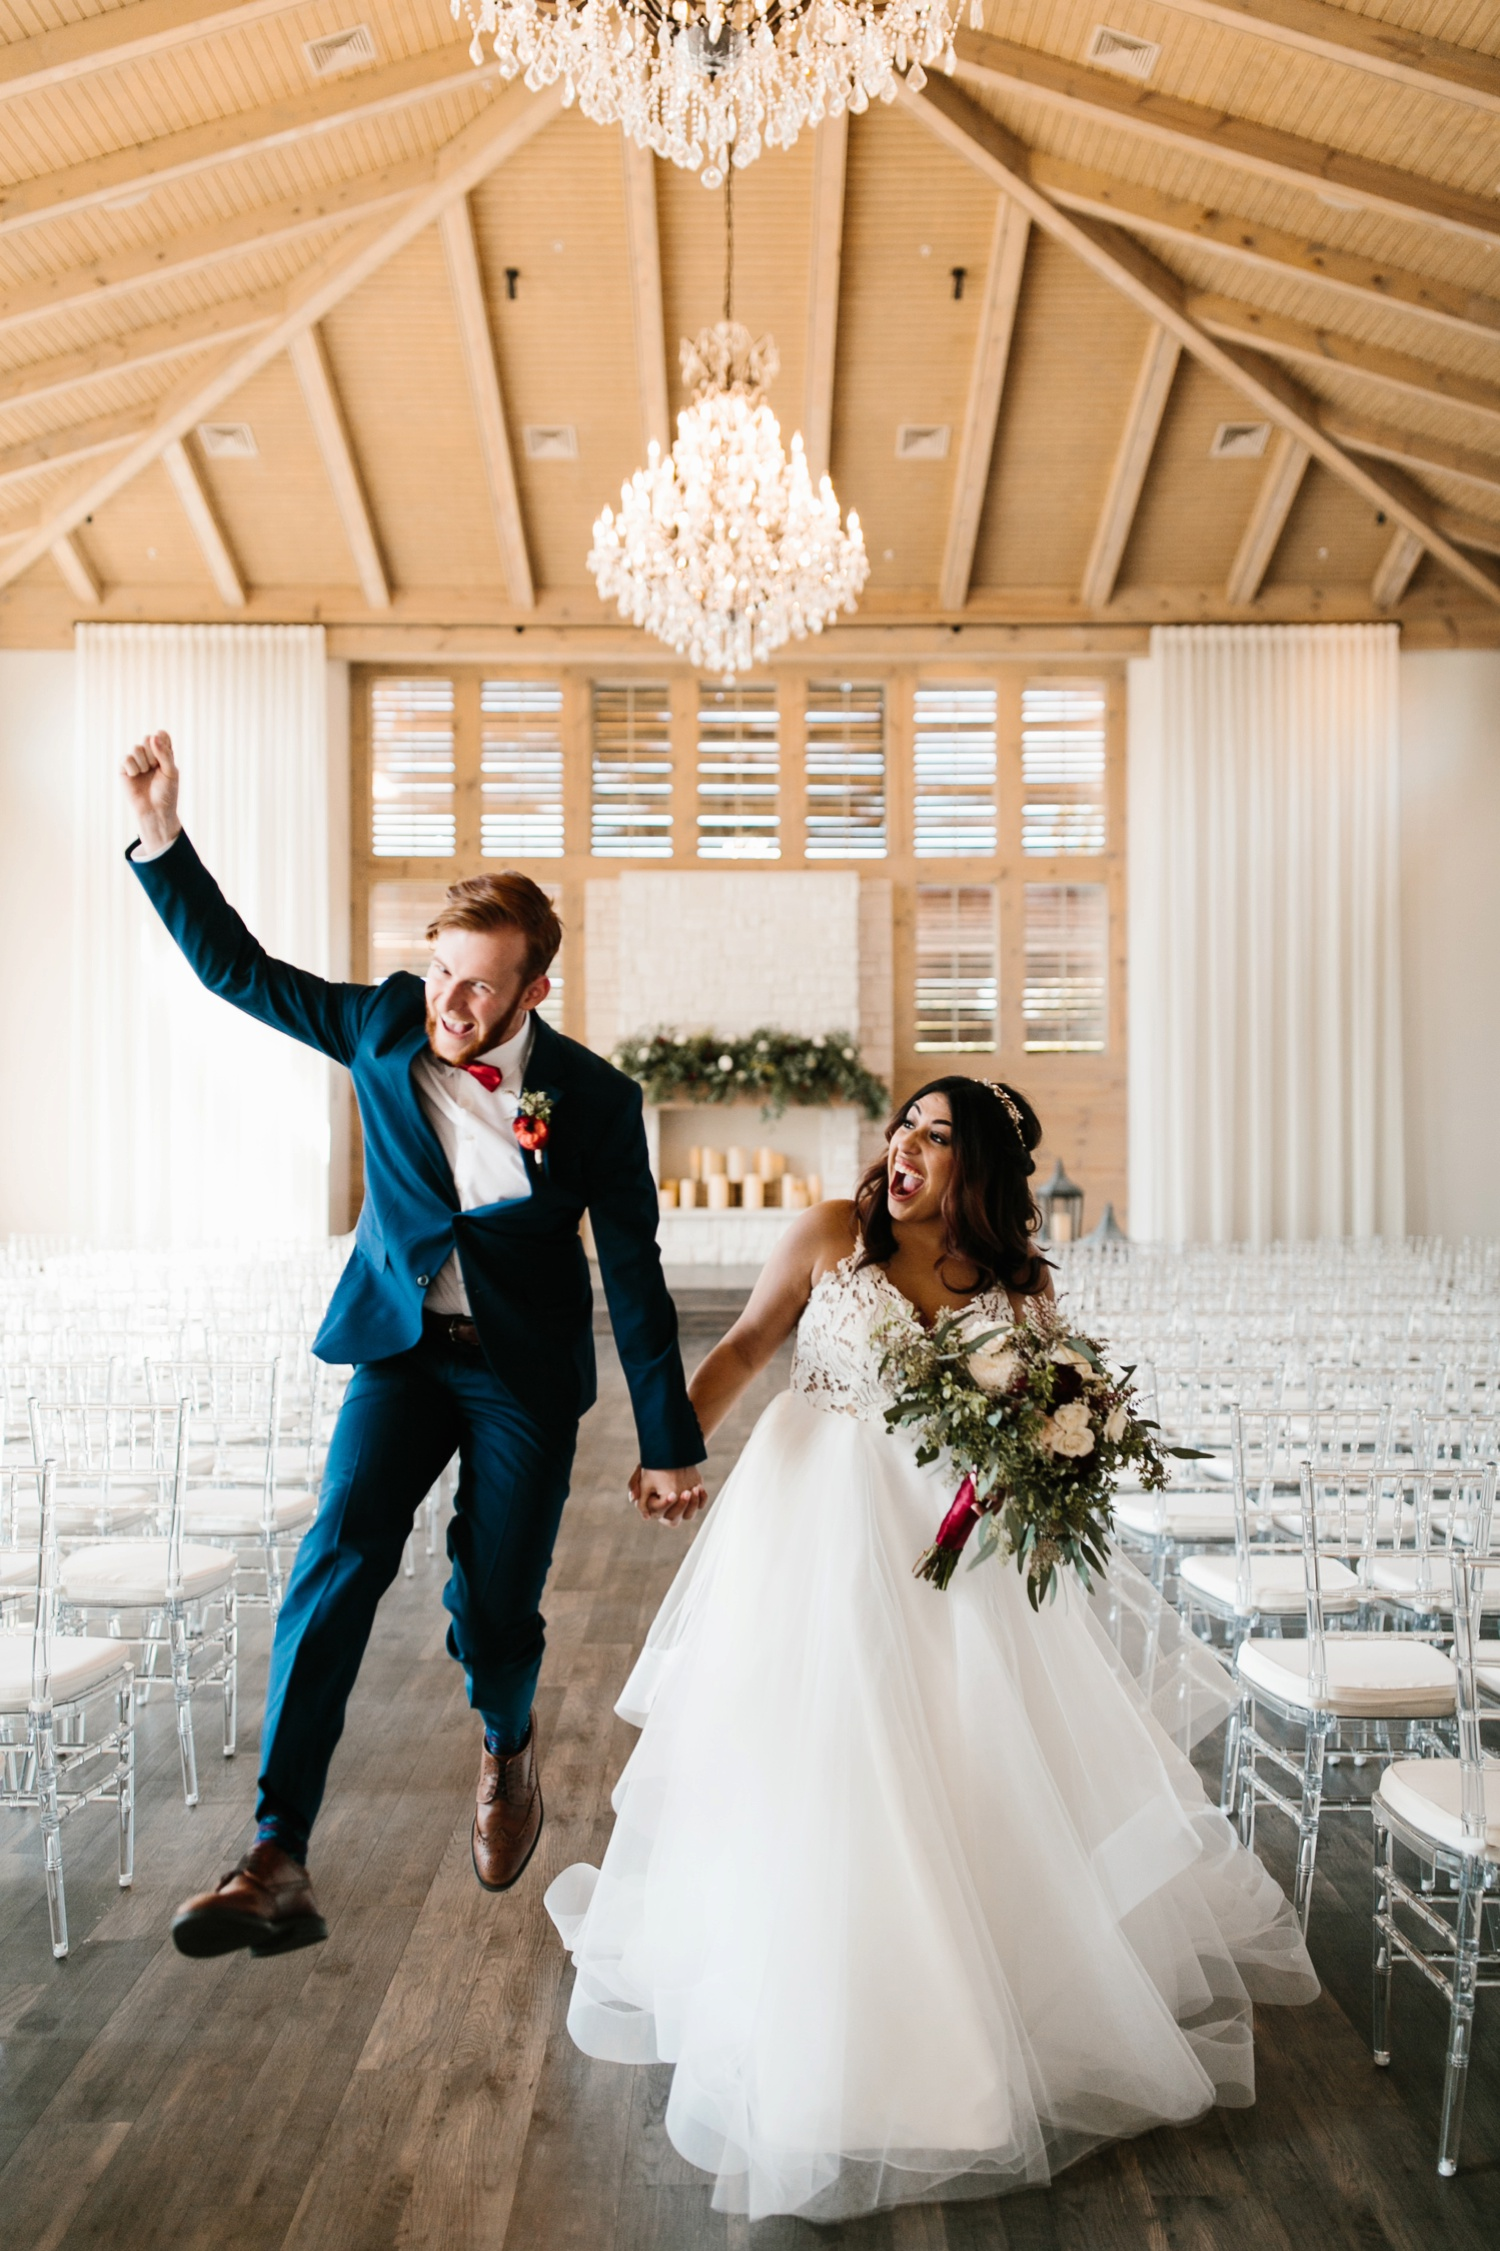 Grant + Lysette | a vibrant, deep burgundy and navy, and mixed metals wedding at Hidden Pines Chapel by North Texas Wedding Photographer Rachel Meagan Photography 128